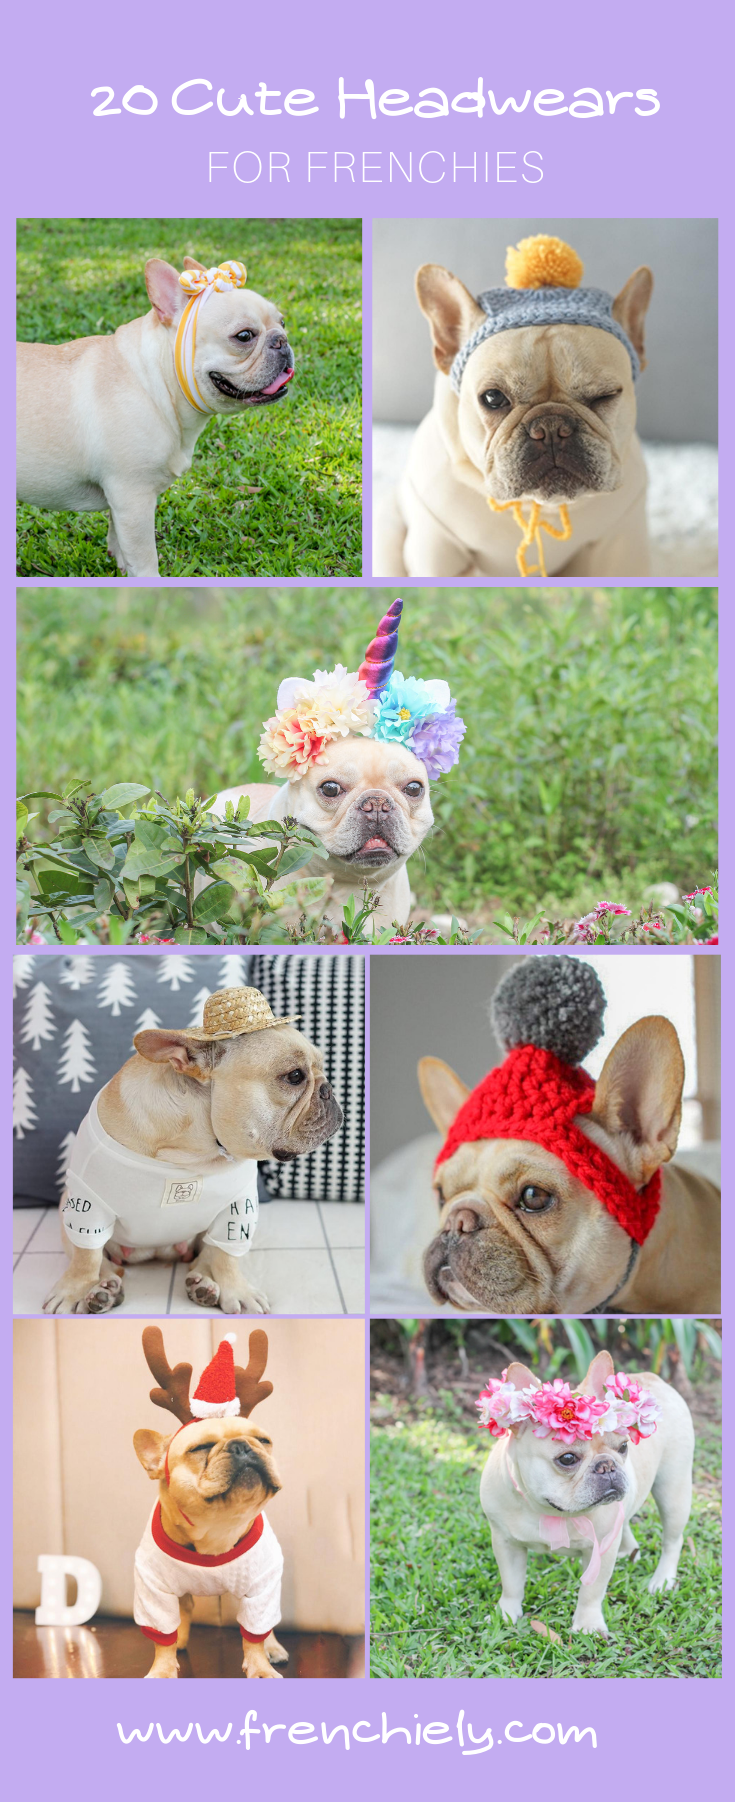 Struggling with what to dress up your French Bulldogs? Get